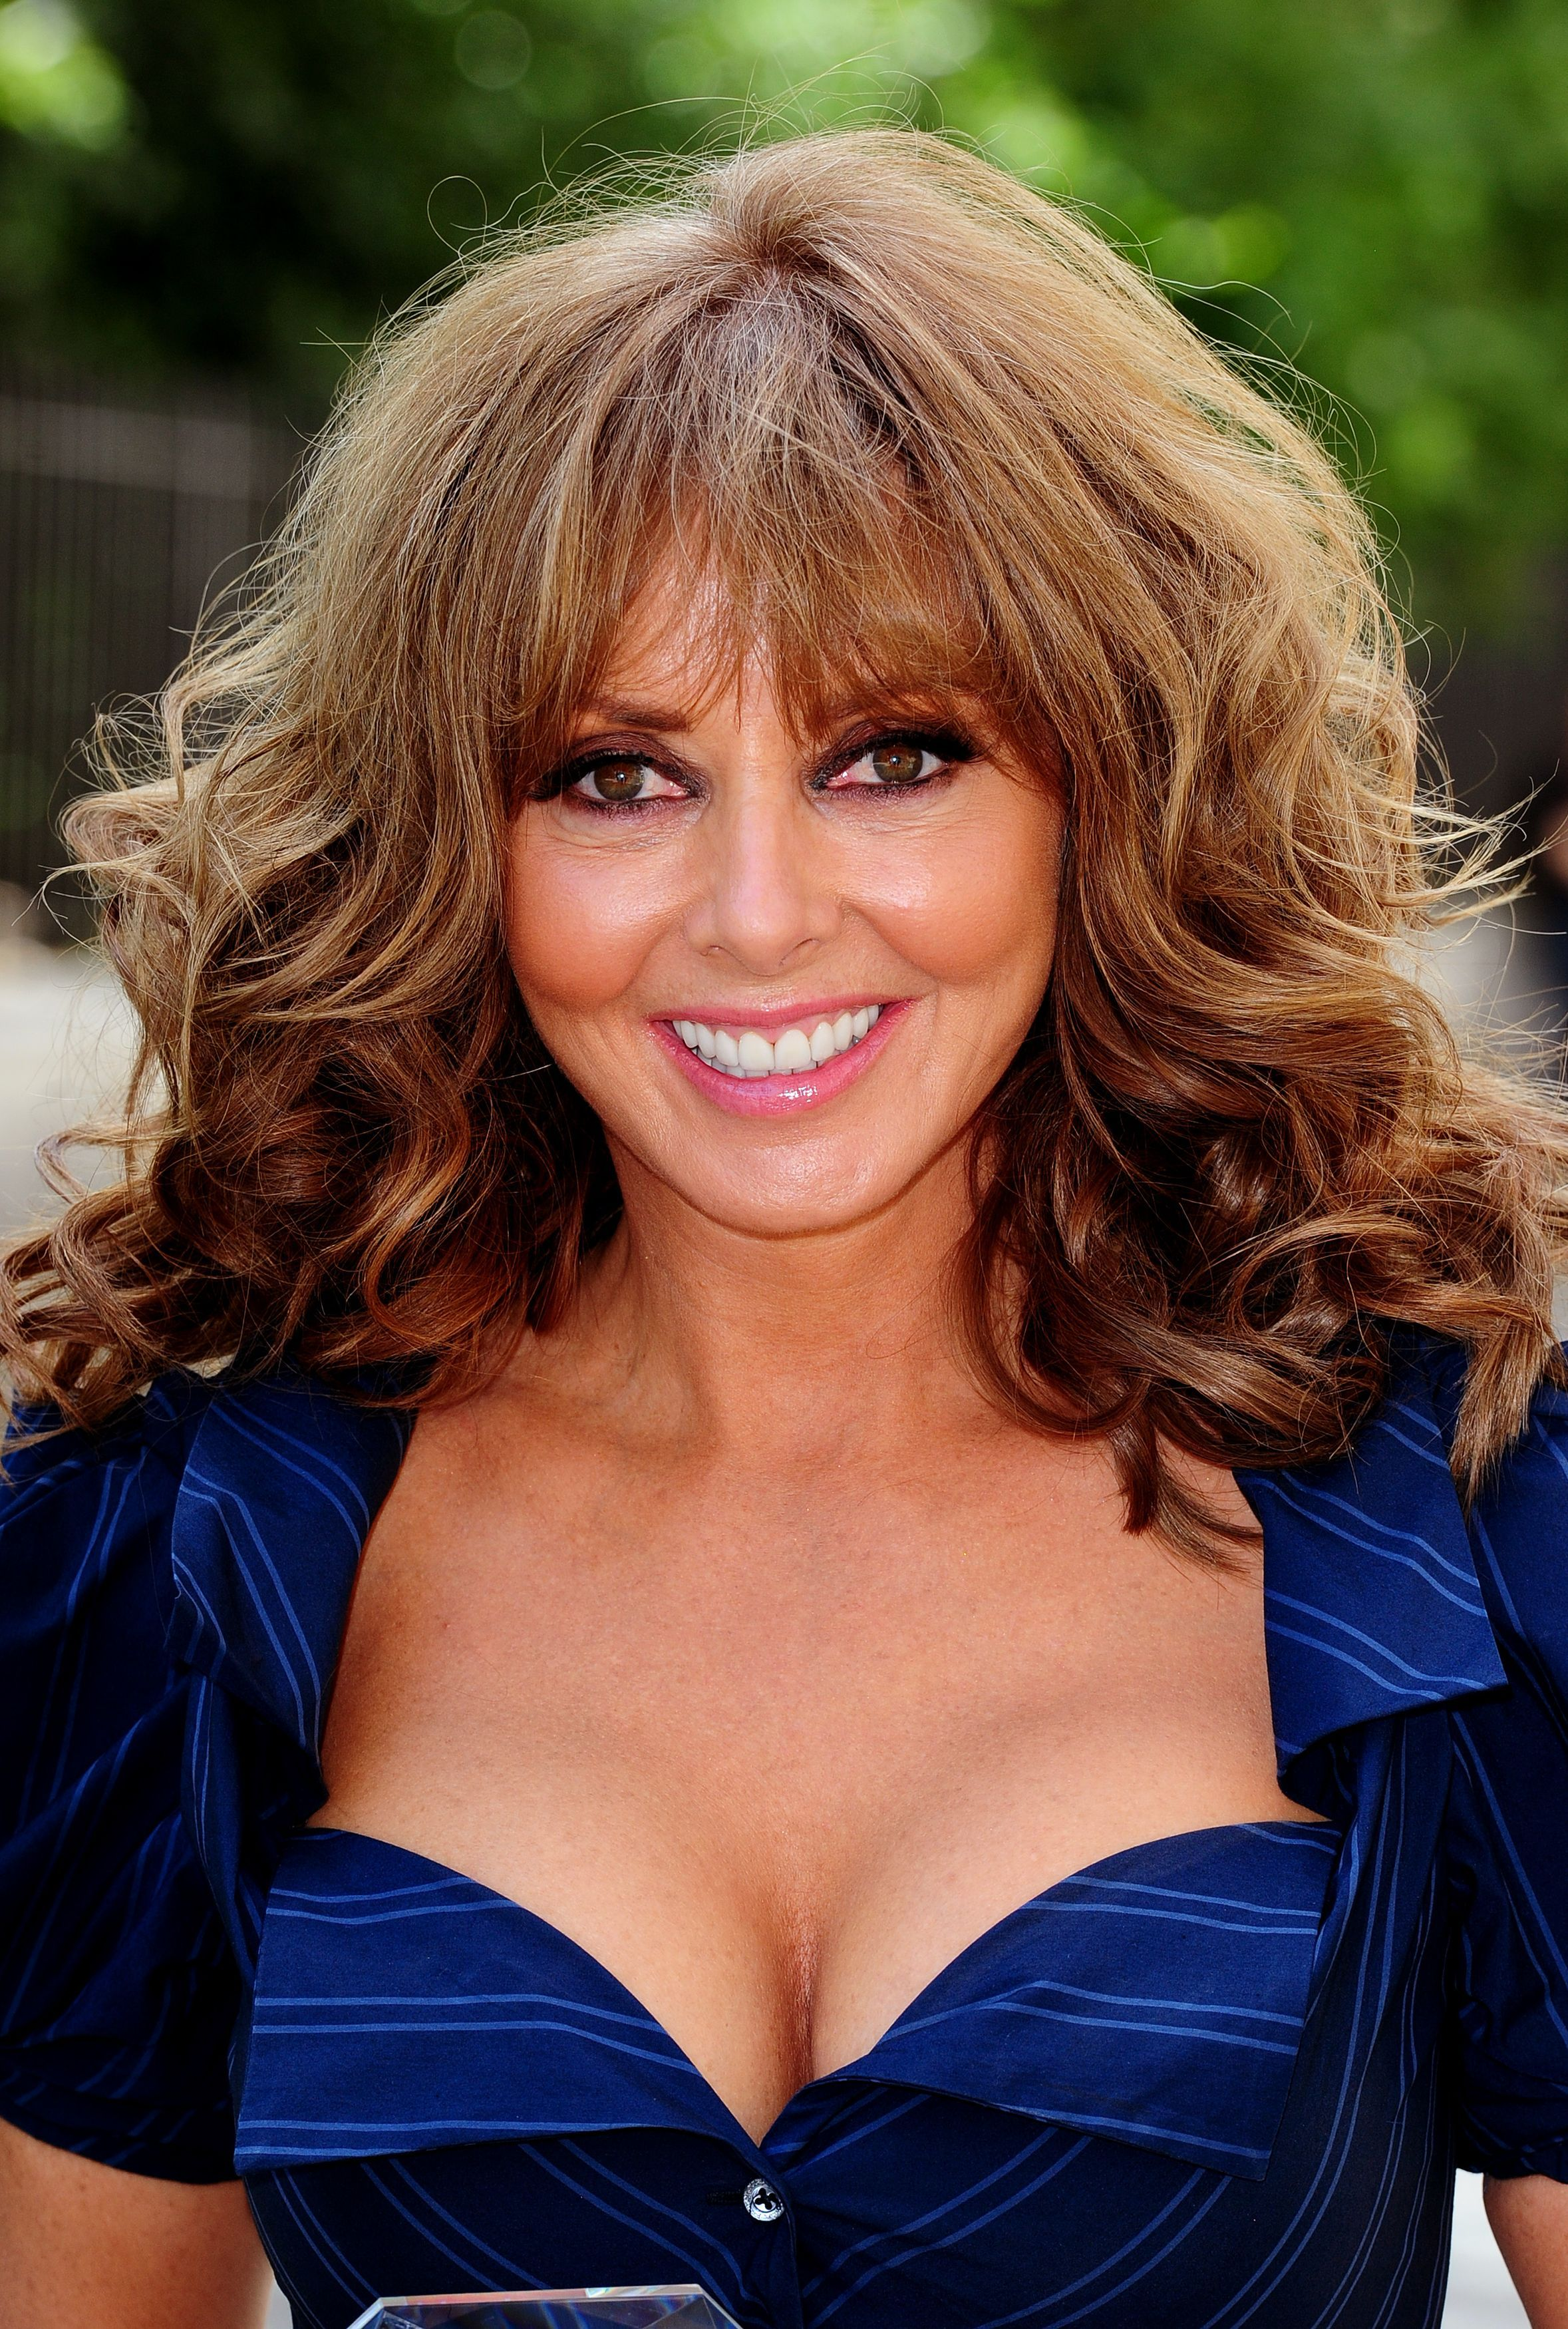 carol-vorderman-hot